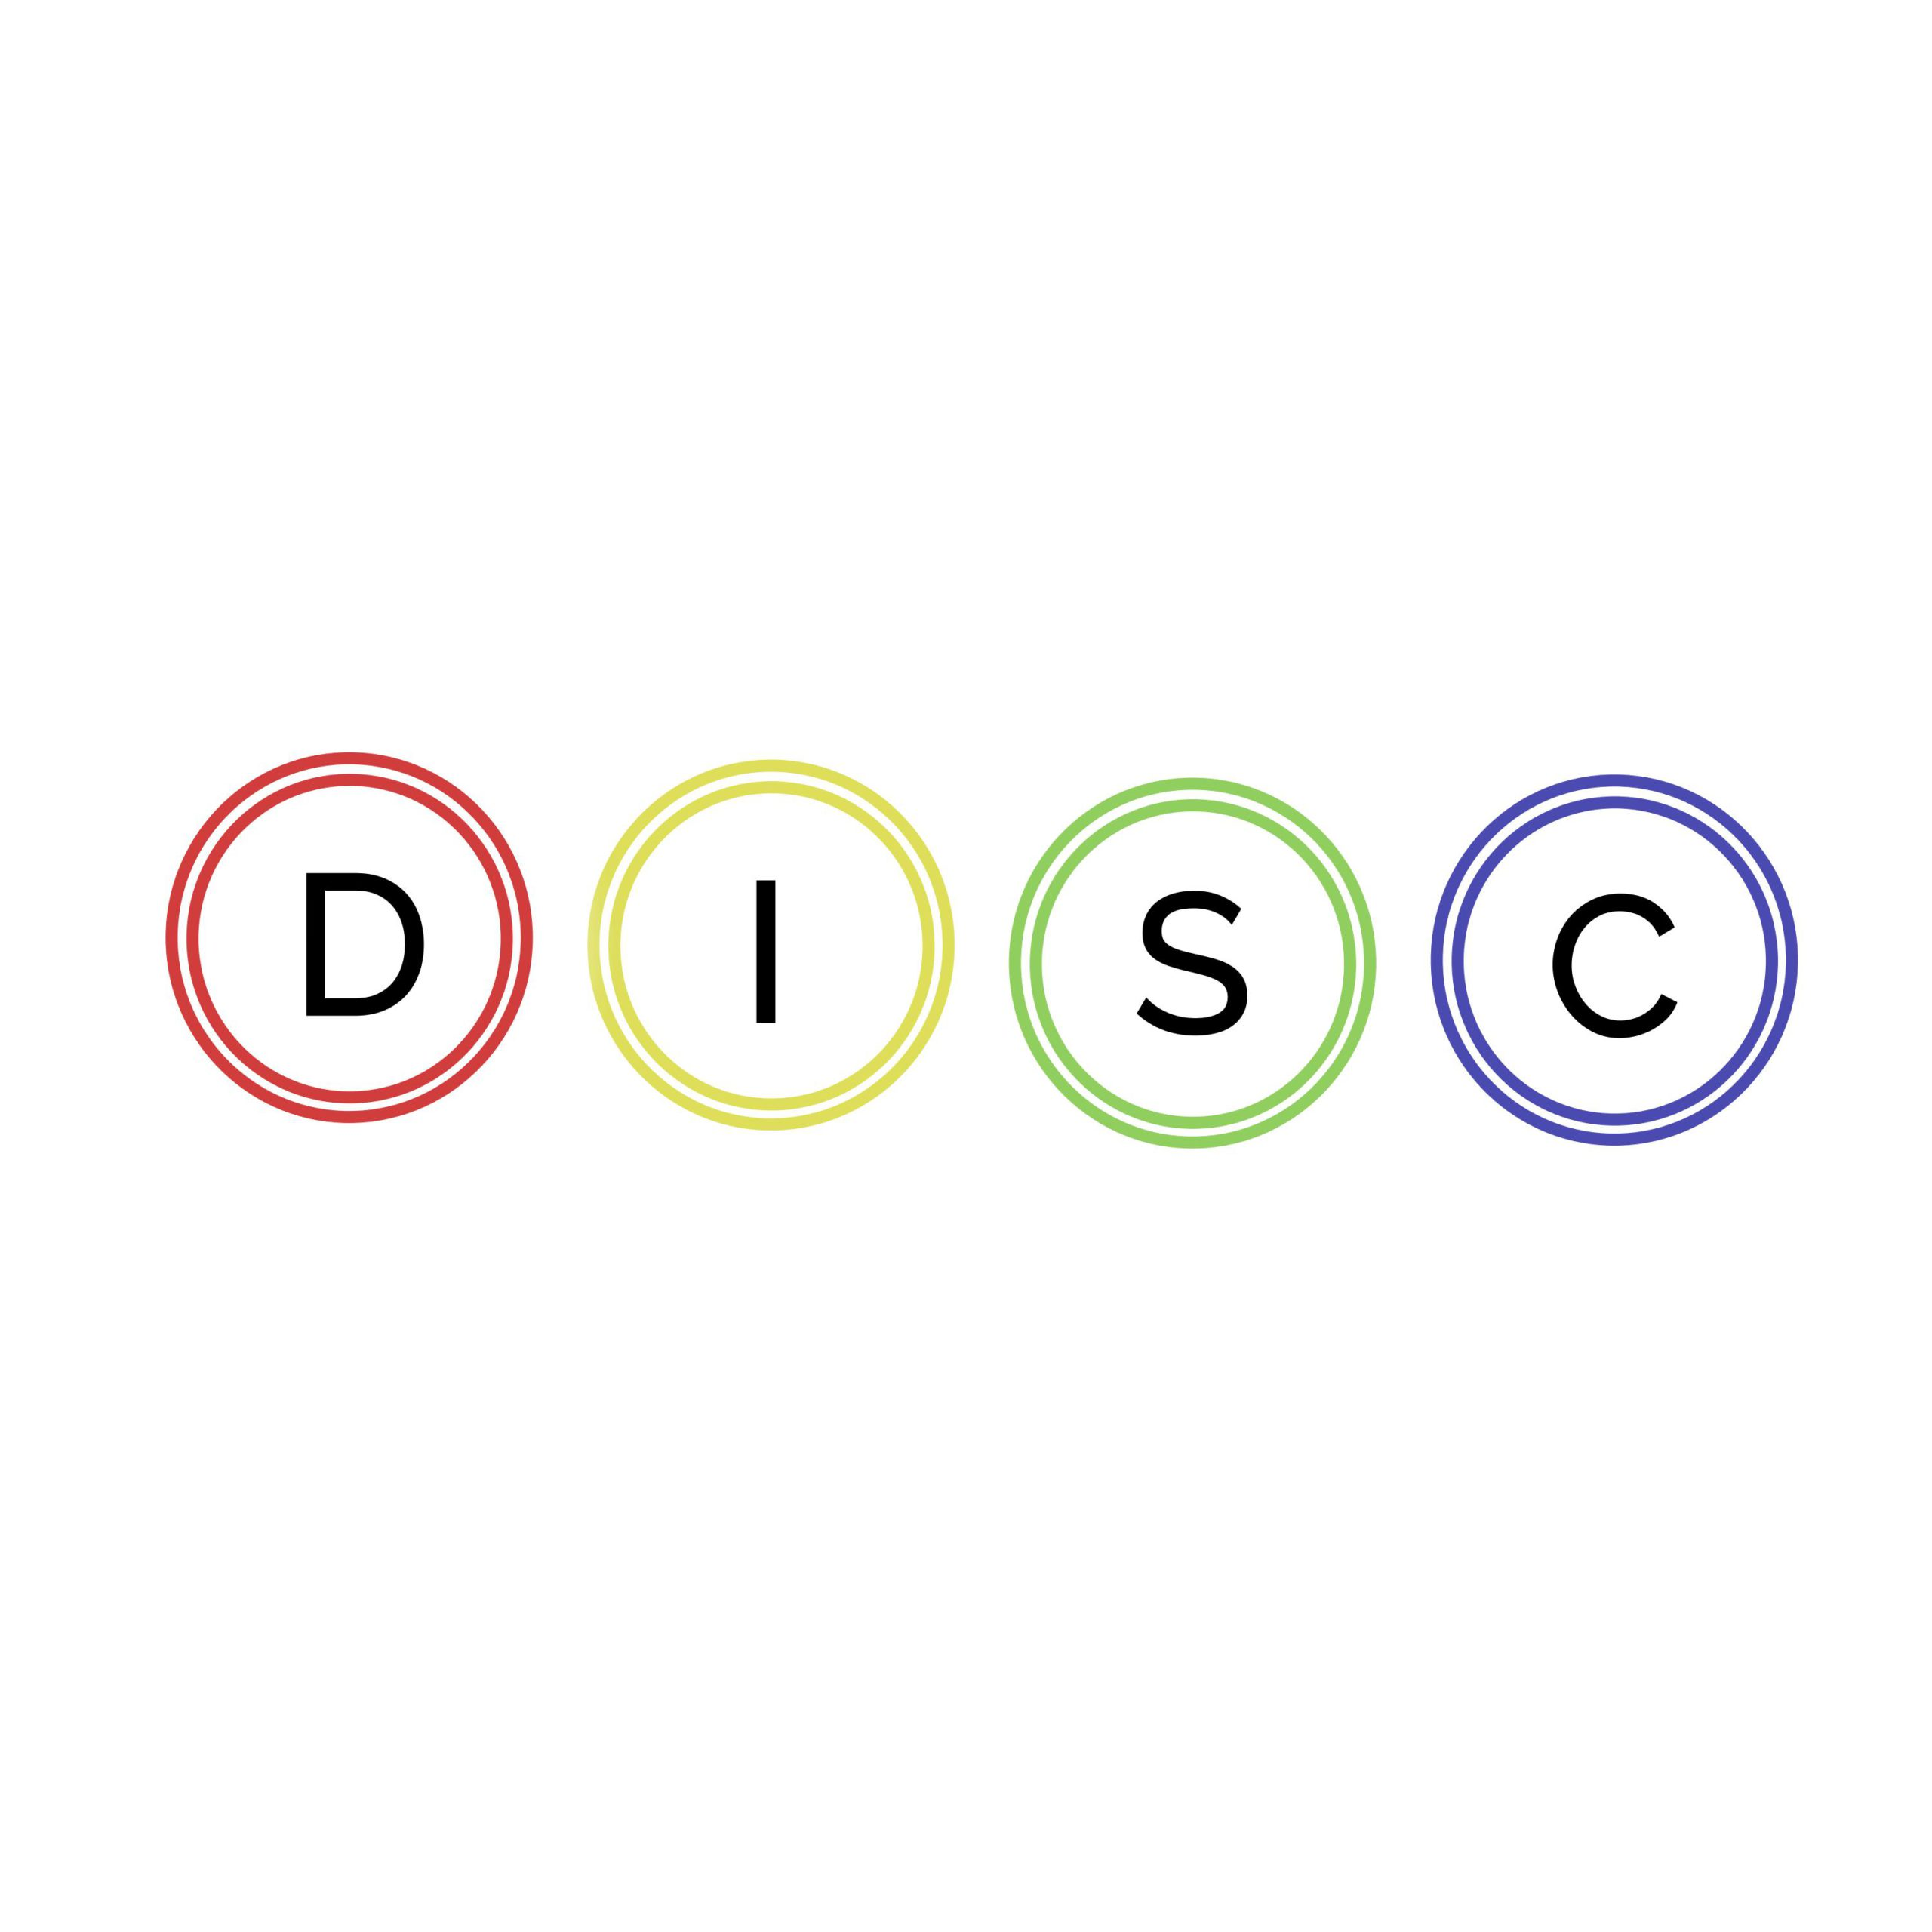 DISC images